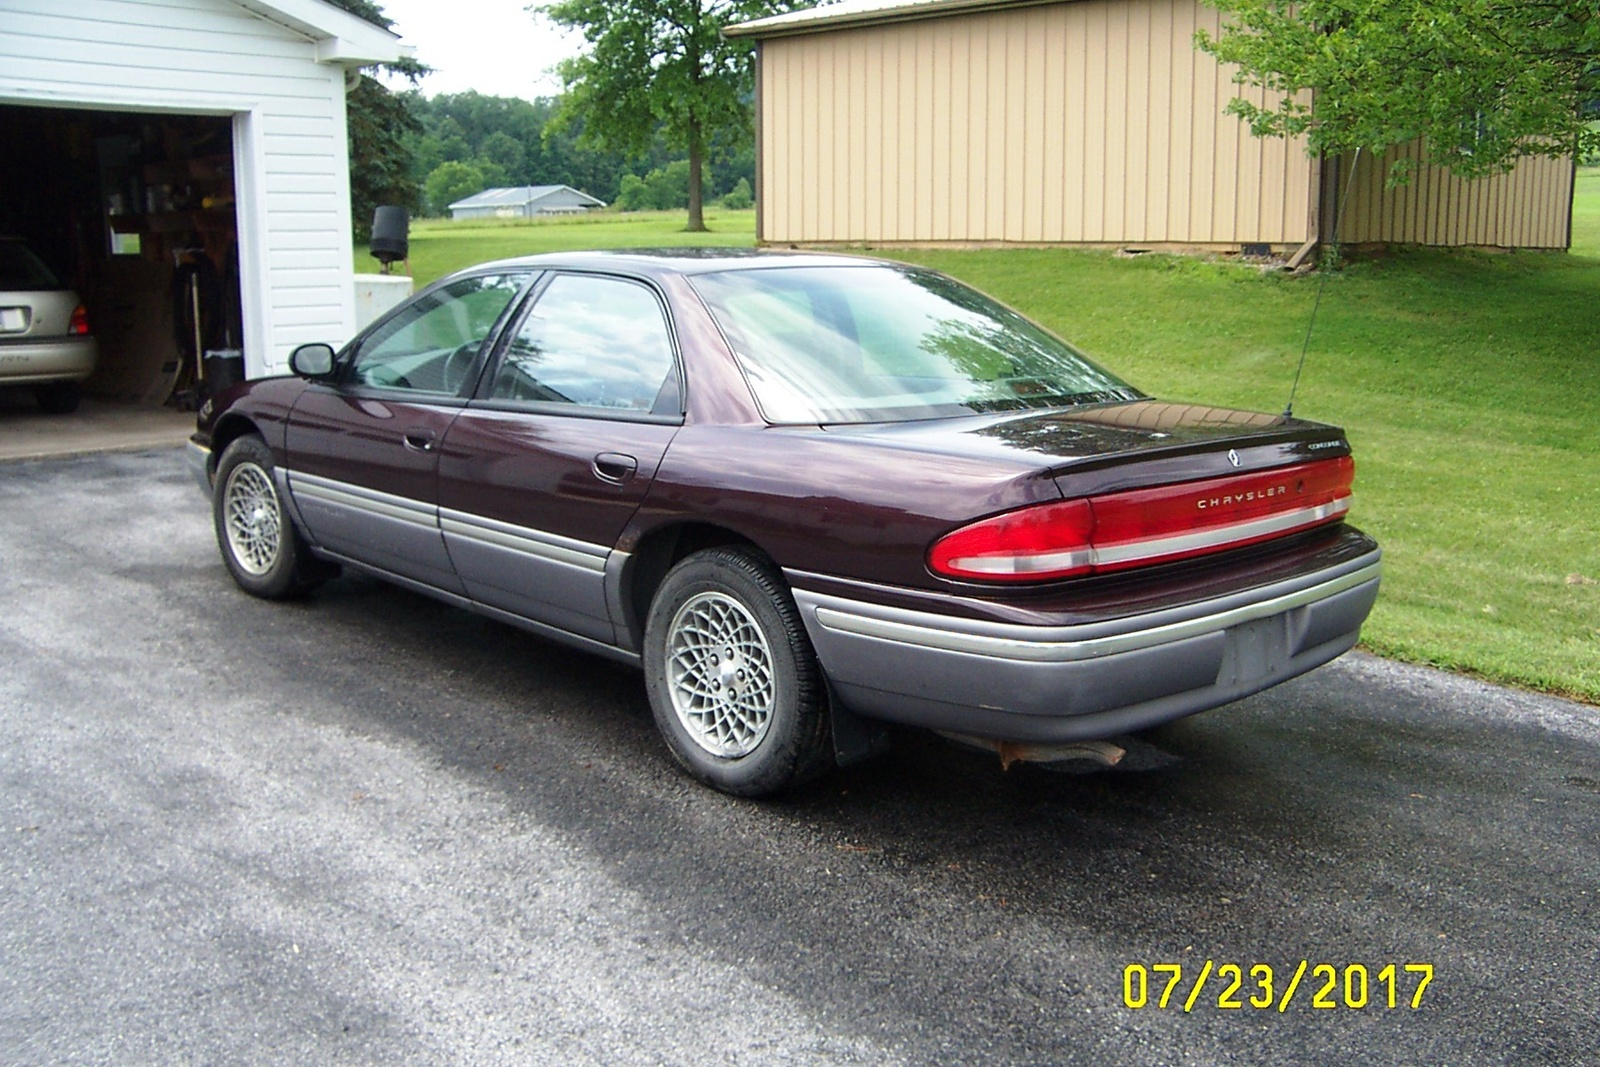 1994 Chrysler Concorde - Overview